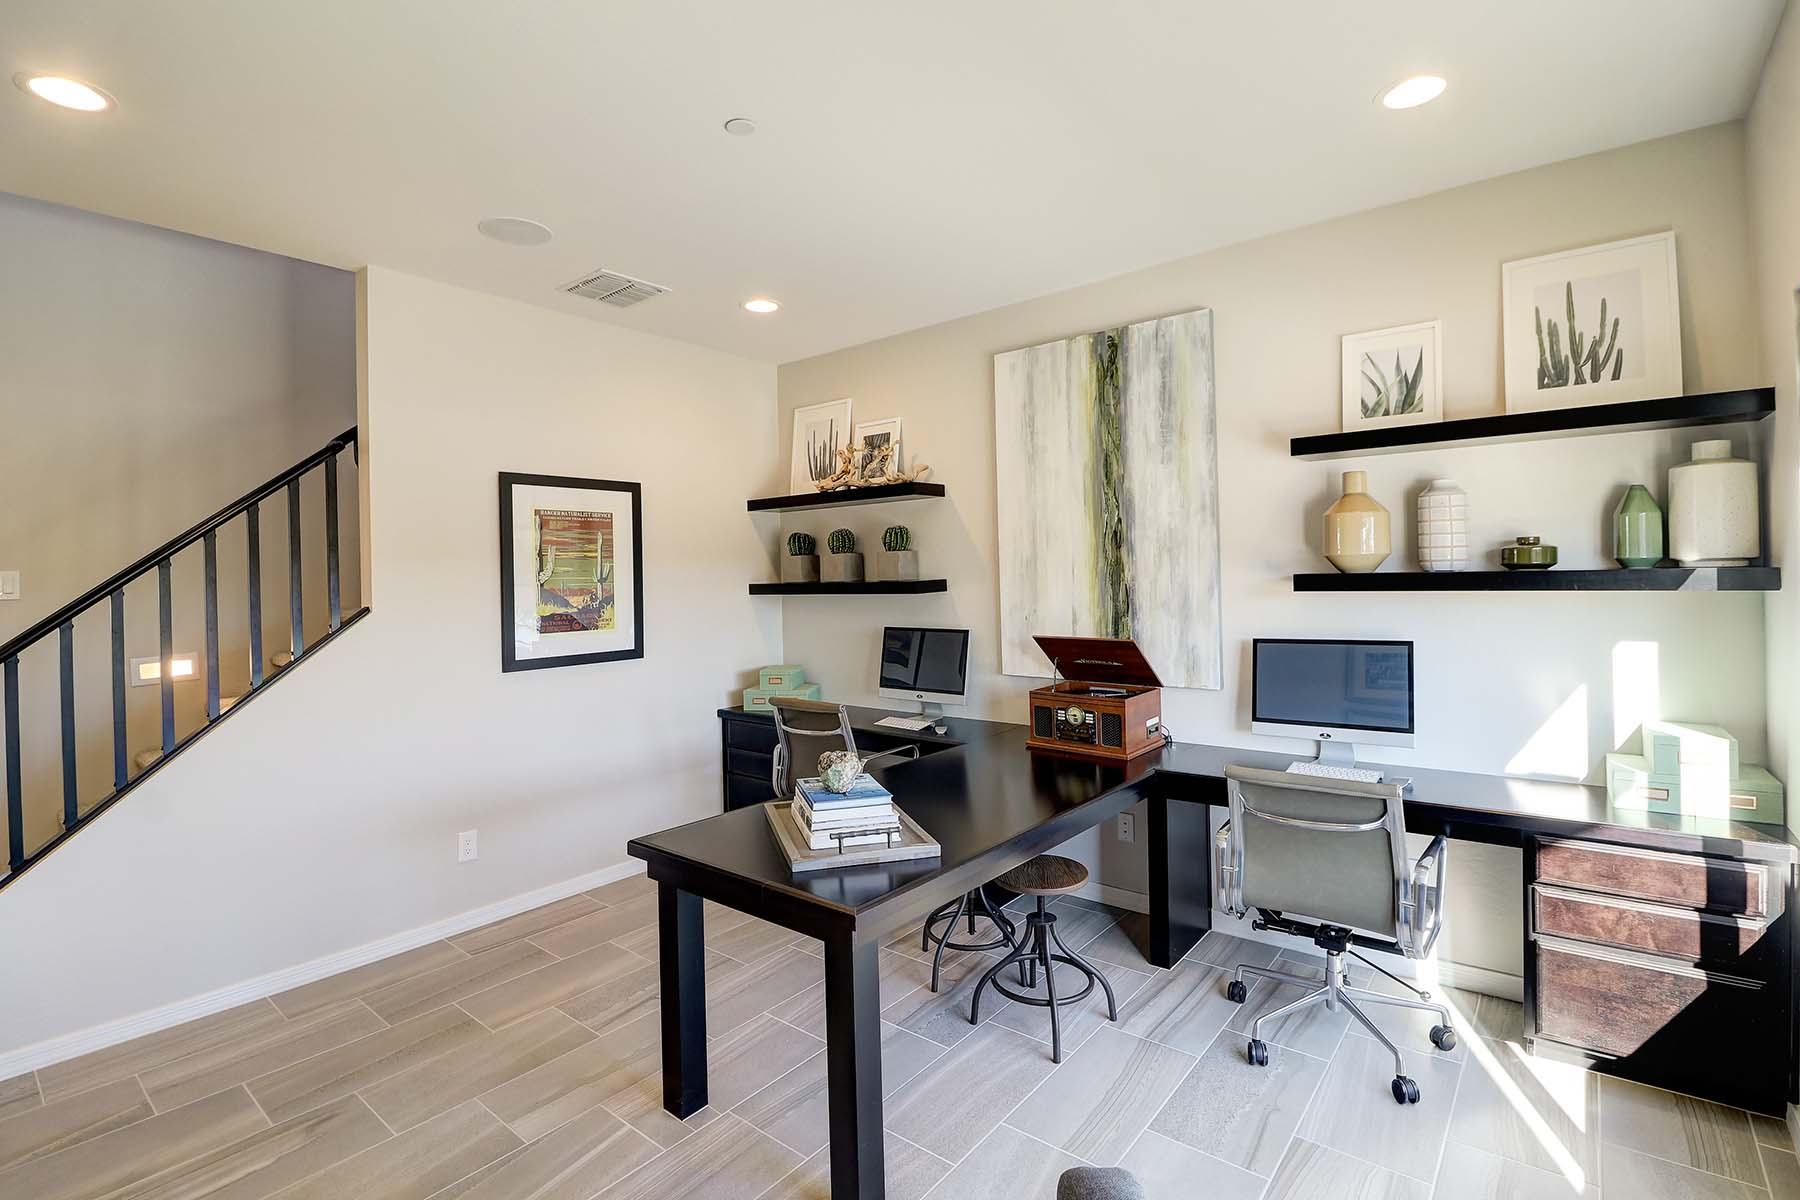 Watson Plan Study Room at Solano at Sienna Hills in Buckeye Arizona by Mattamy Homes